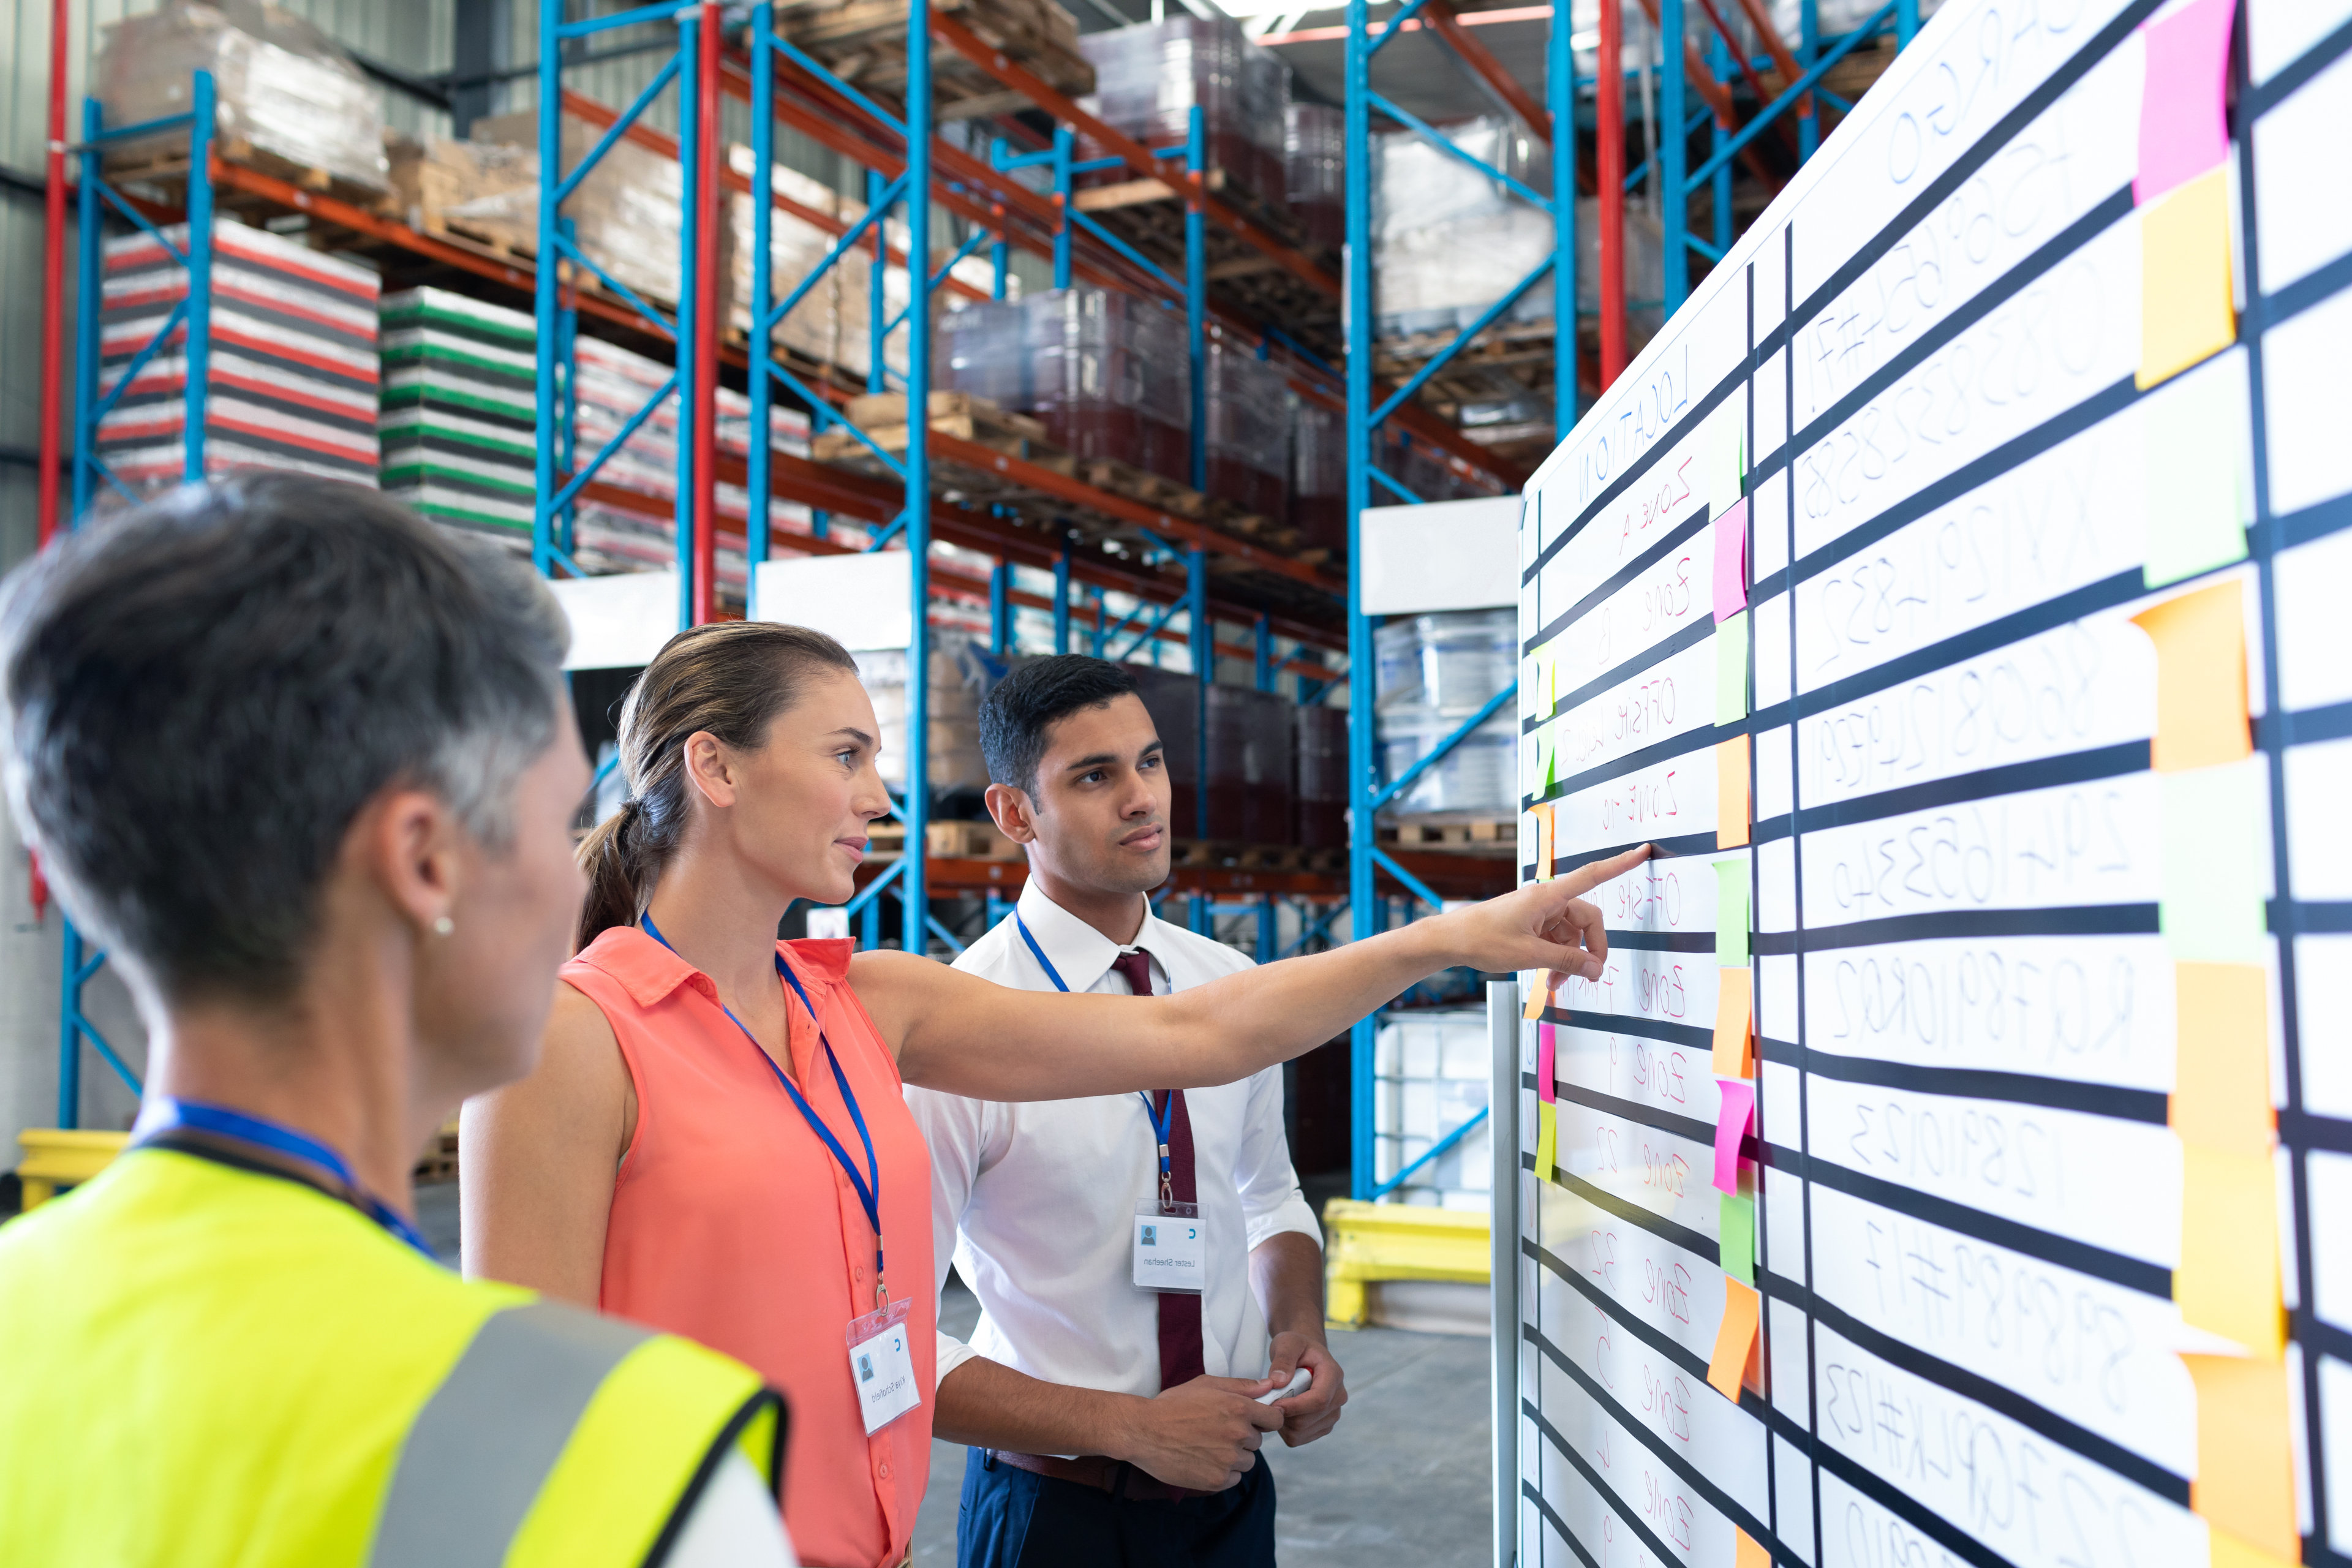 Staff discussing details against a whiteboard in a warehouse